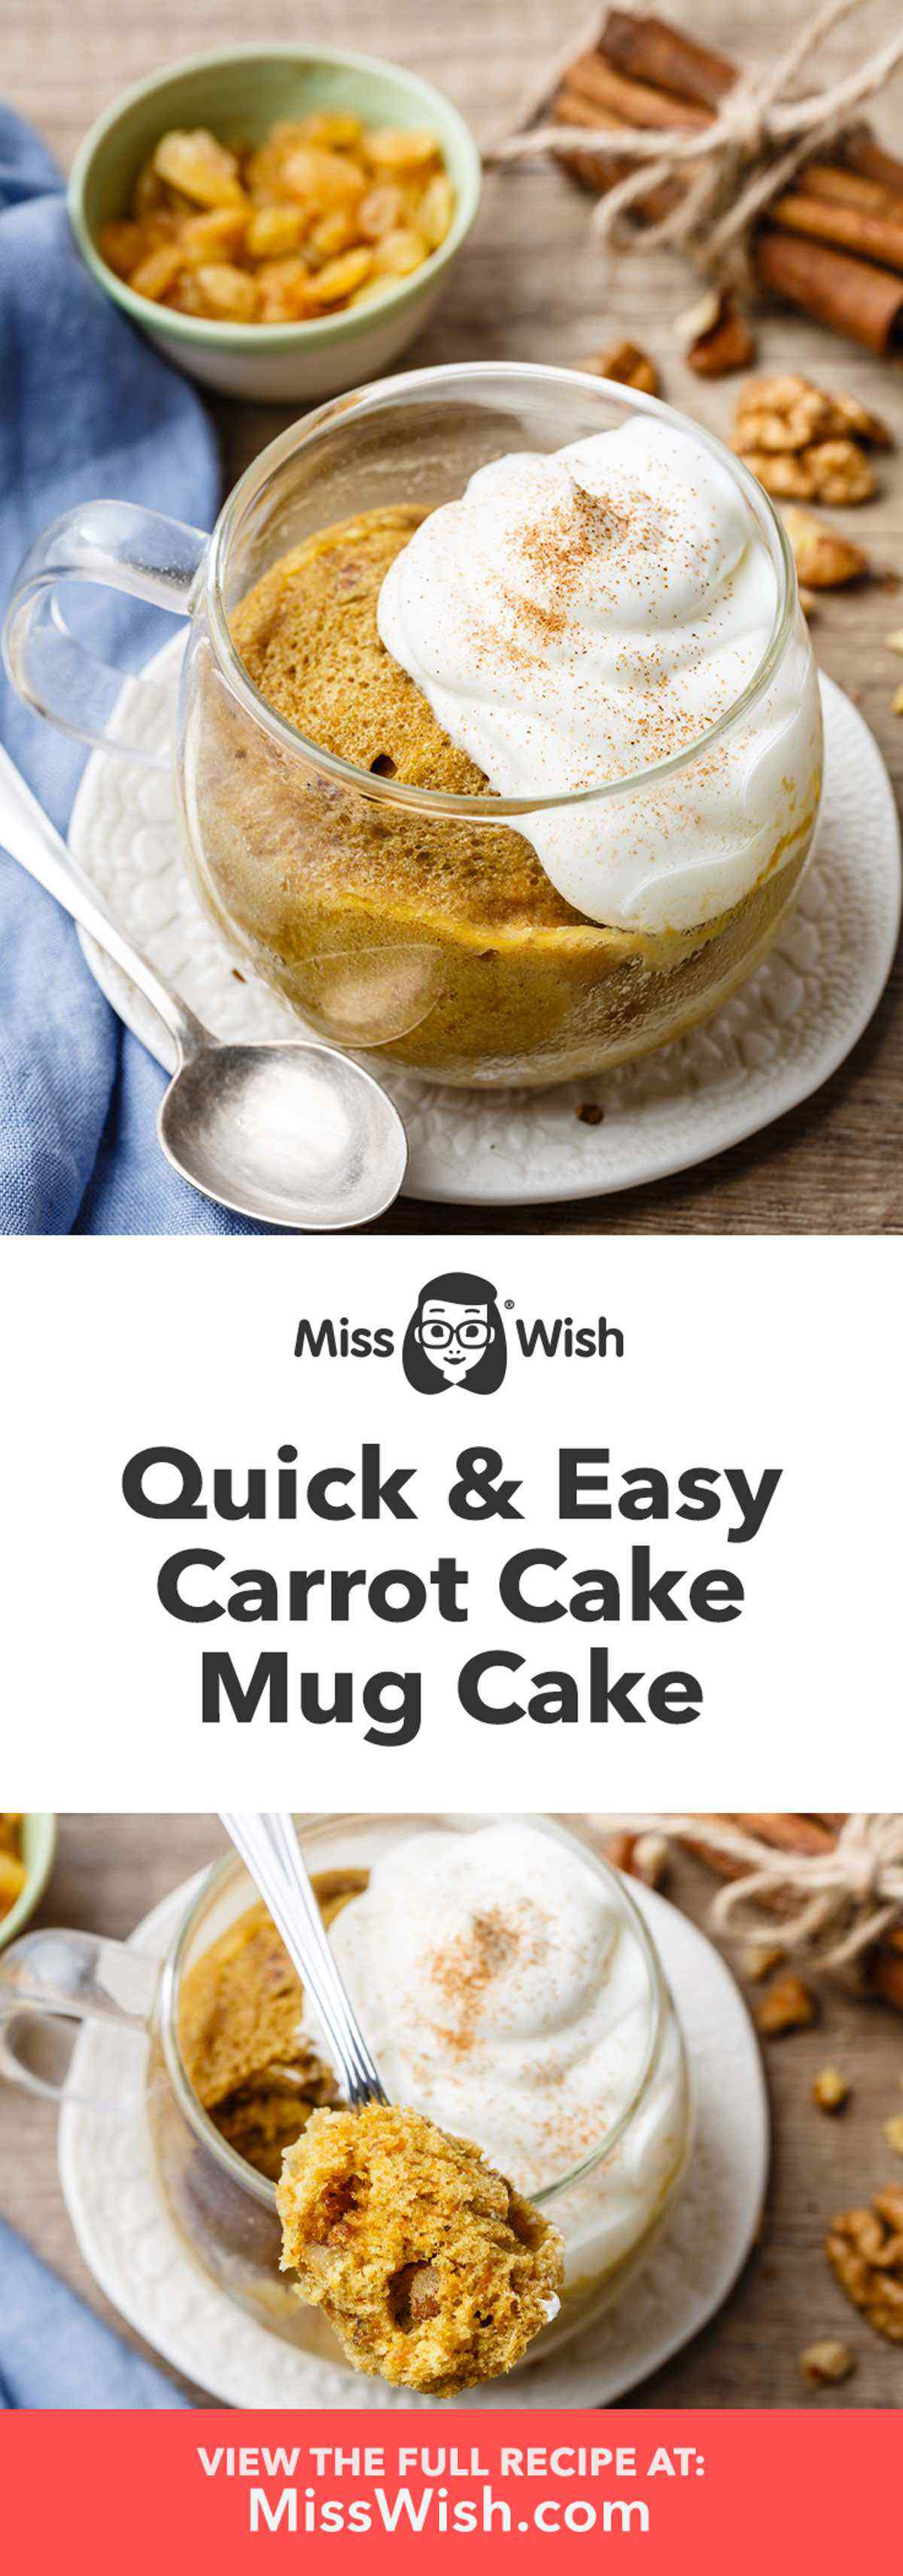 Quick and Easy Carrot Cake Mug Cake